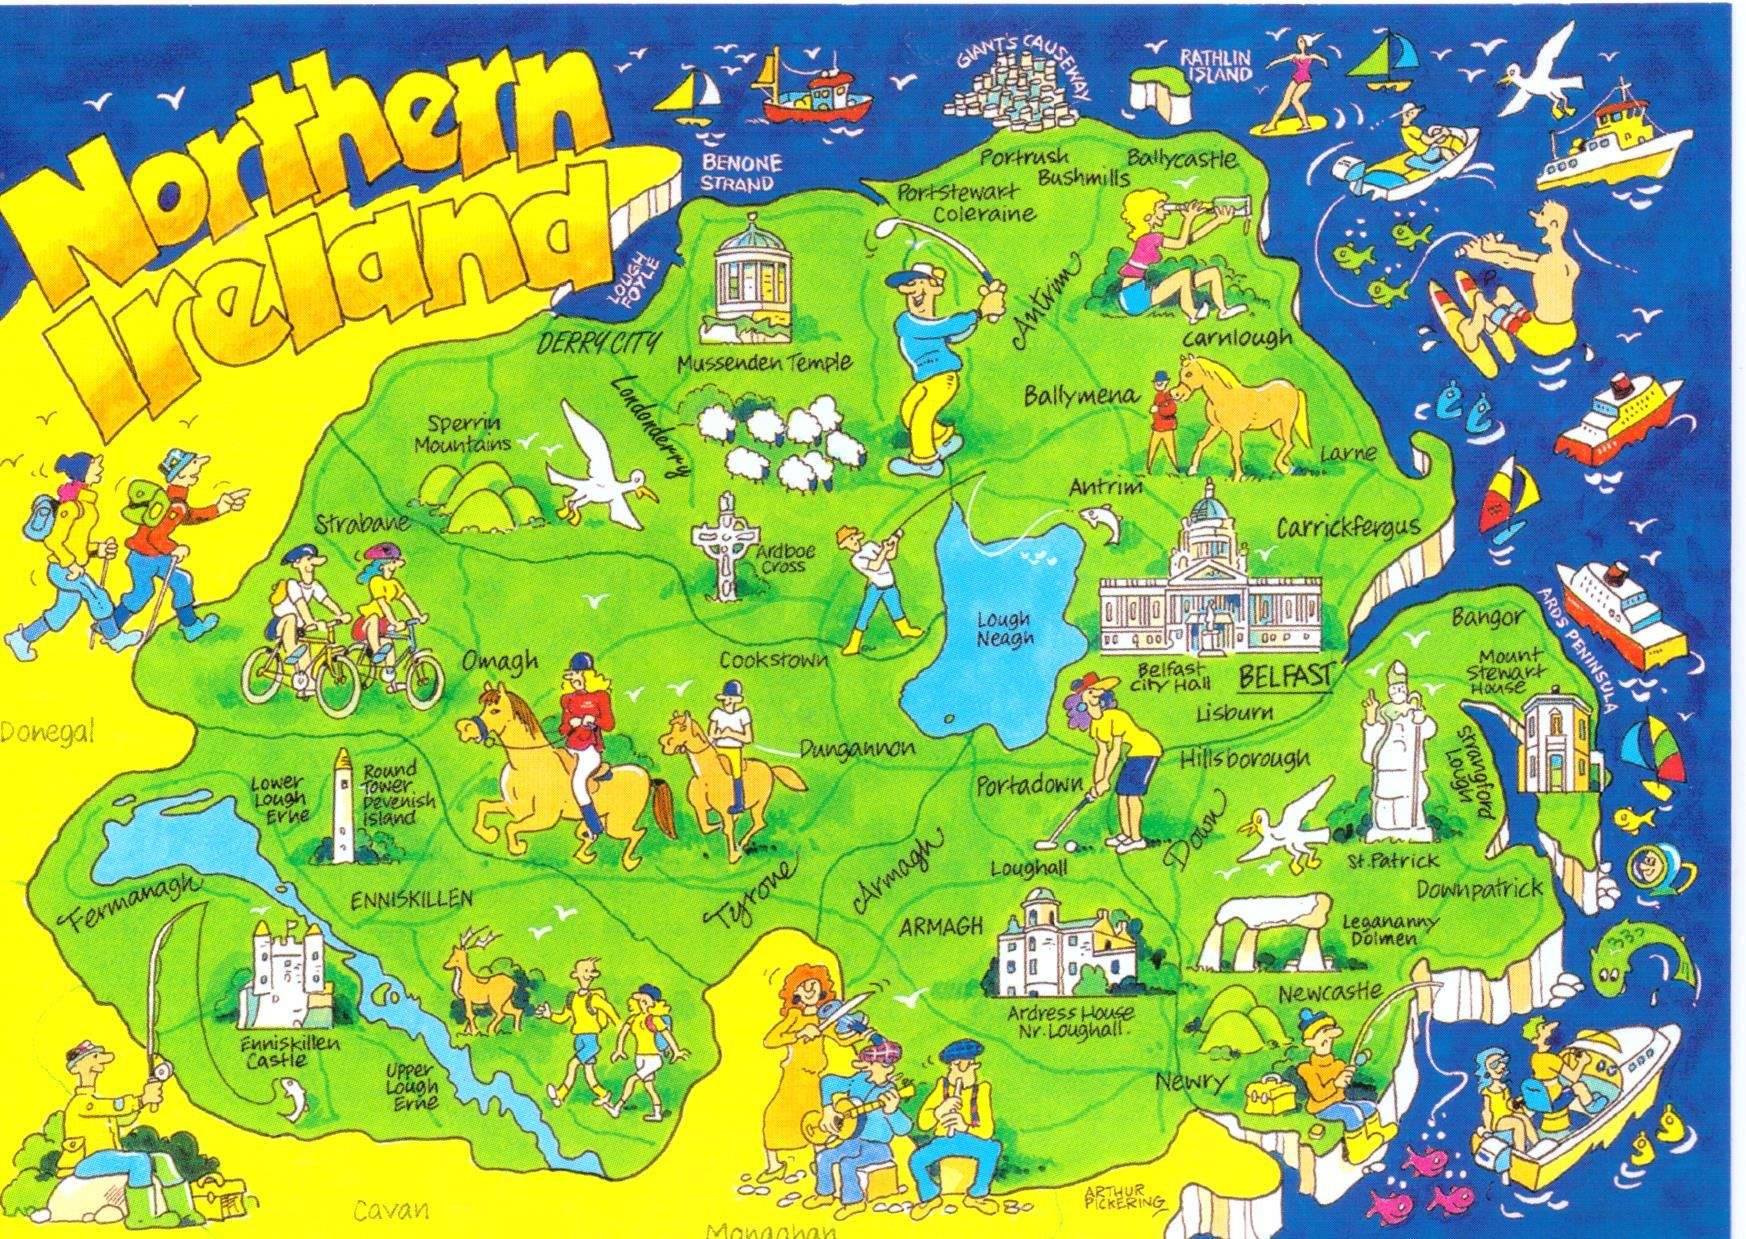 Transportation and county map of Northern Ireland TV greats